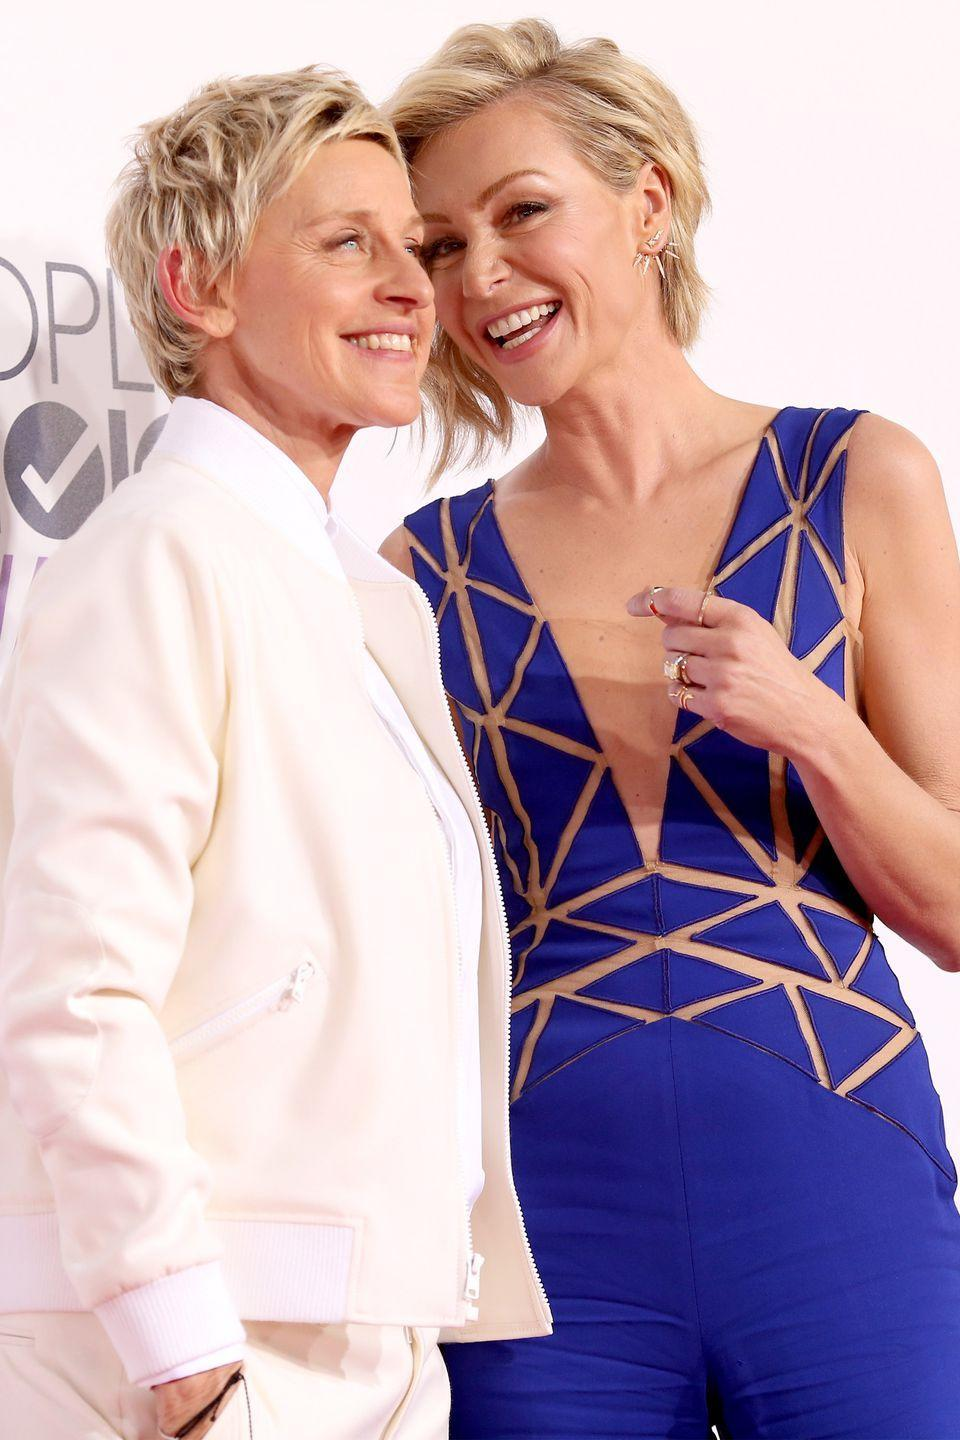 "<p>Ellen DeGeneres and Portia de Rossi started dating back in 2004, and their relationship moved swiftly from there. By 2005, the couple was sharing a home in Los Angeles and DeGeneres (who's 15 years de Rossi's senior) told <a href=""http://people.com/archive/cover-story-ellen-at-home-at-ease-vol-64-no-20/"" rel=""nofollow noopener"" target=""_blank"" data-ylk=""slk:People"" class=""link rapid-noclick-resp""><em>People</em></a><em>,</em> ""It's the first time that I've known in every cell of my being that I'm with somebody for the rest of my life."" The two were married in 2008, after same-sex marriage was legalized in their home-state of California, and have been together ever since.</p>"